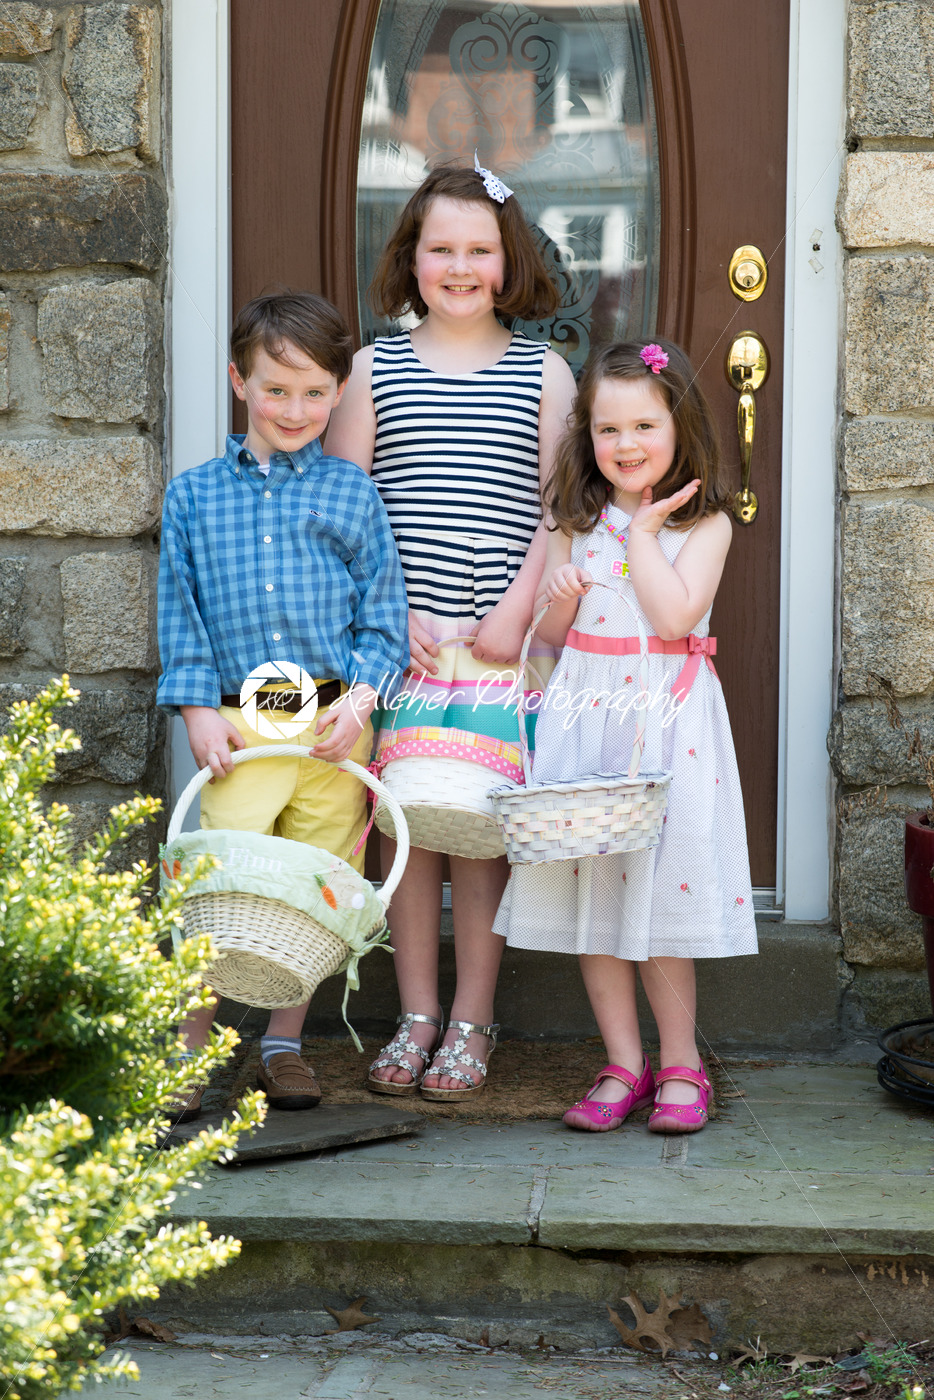 Young Siblings Outside Dressed Up for Easter holding Baskets - Kelleher Photography Store